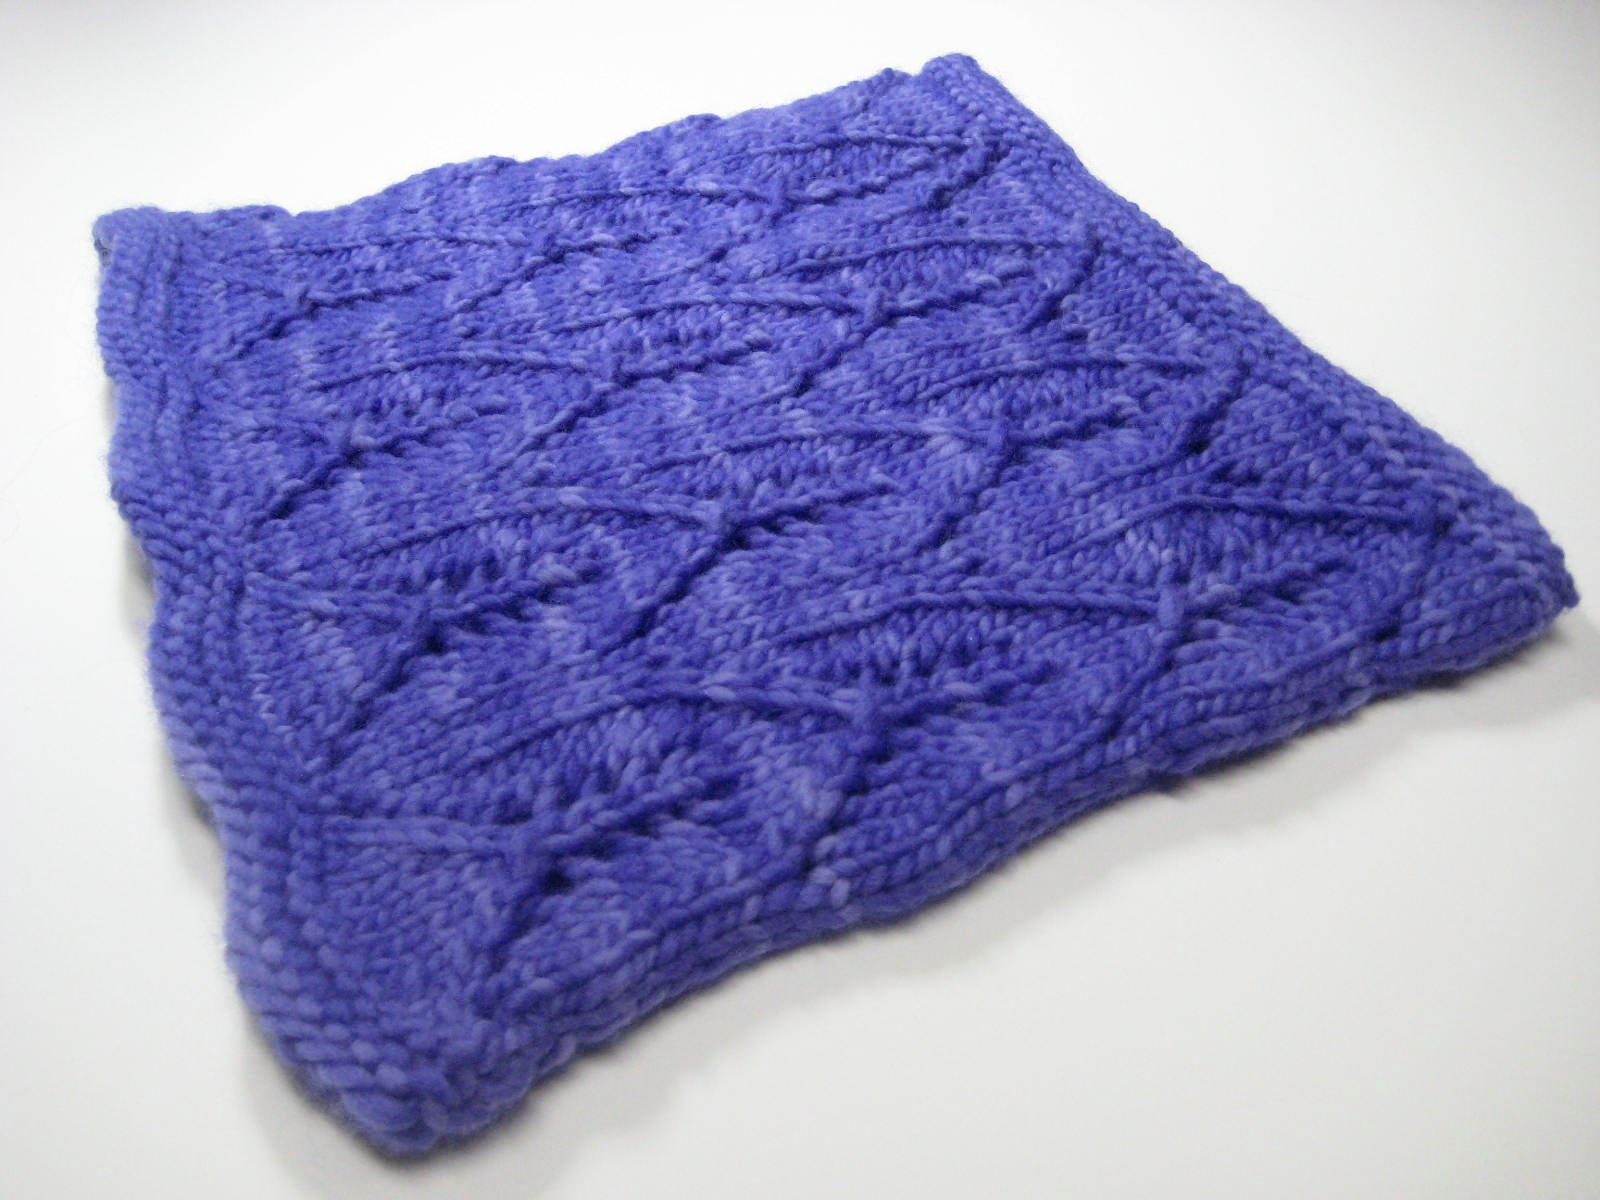 Robin Ulrich Studio: New Knitting Pattern - Greyhaven (Part II)